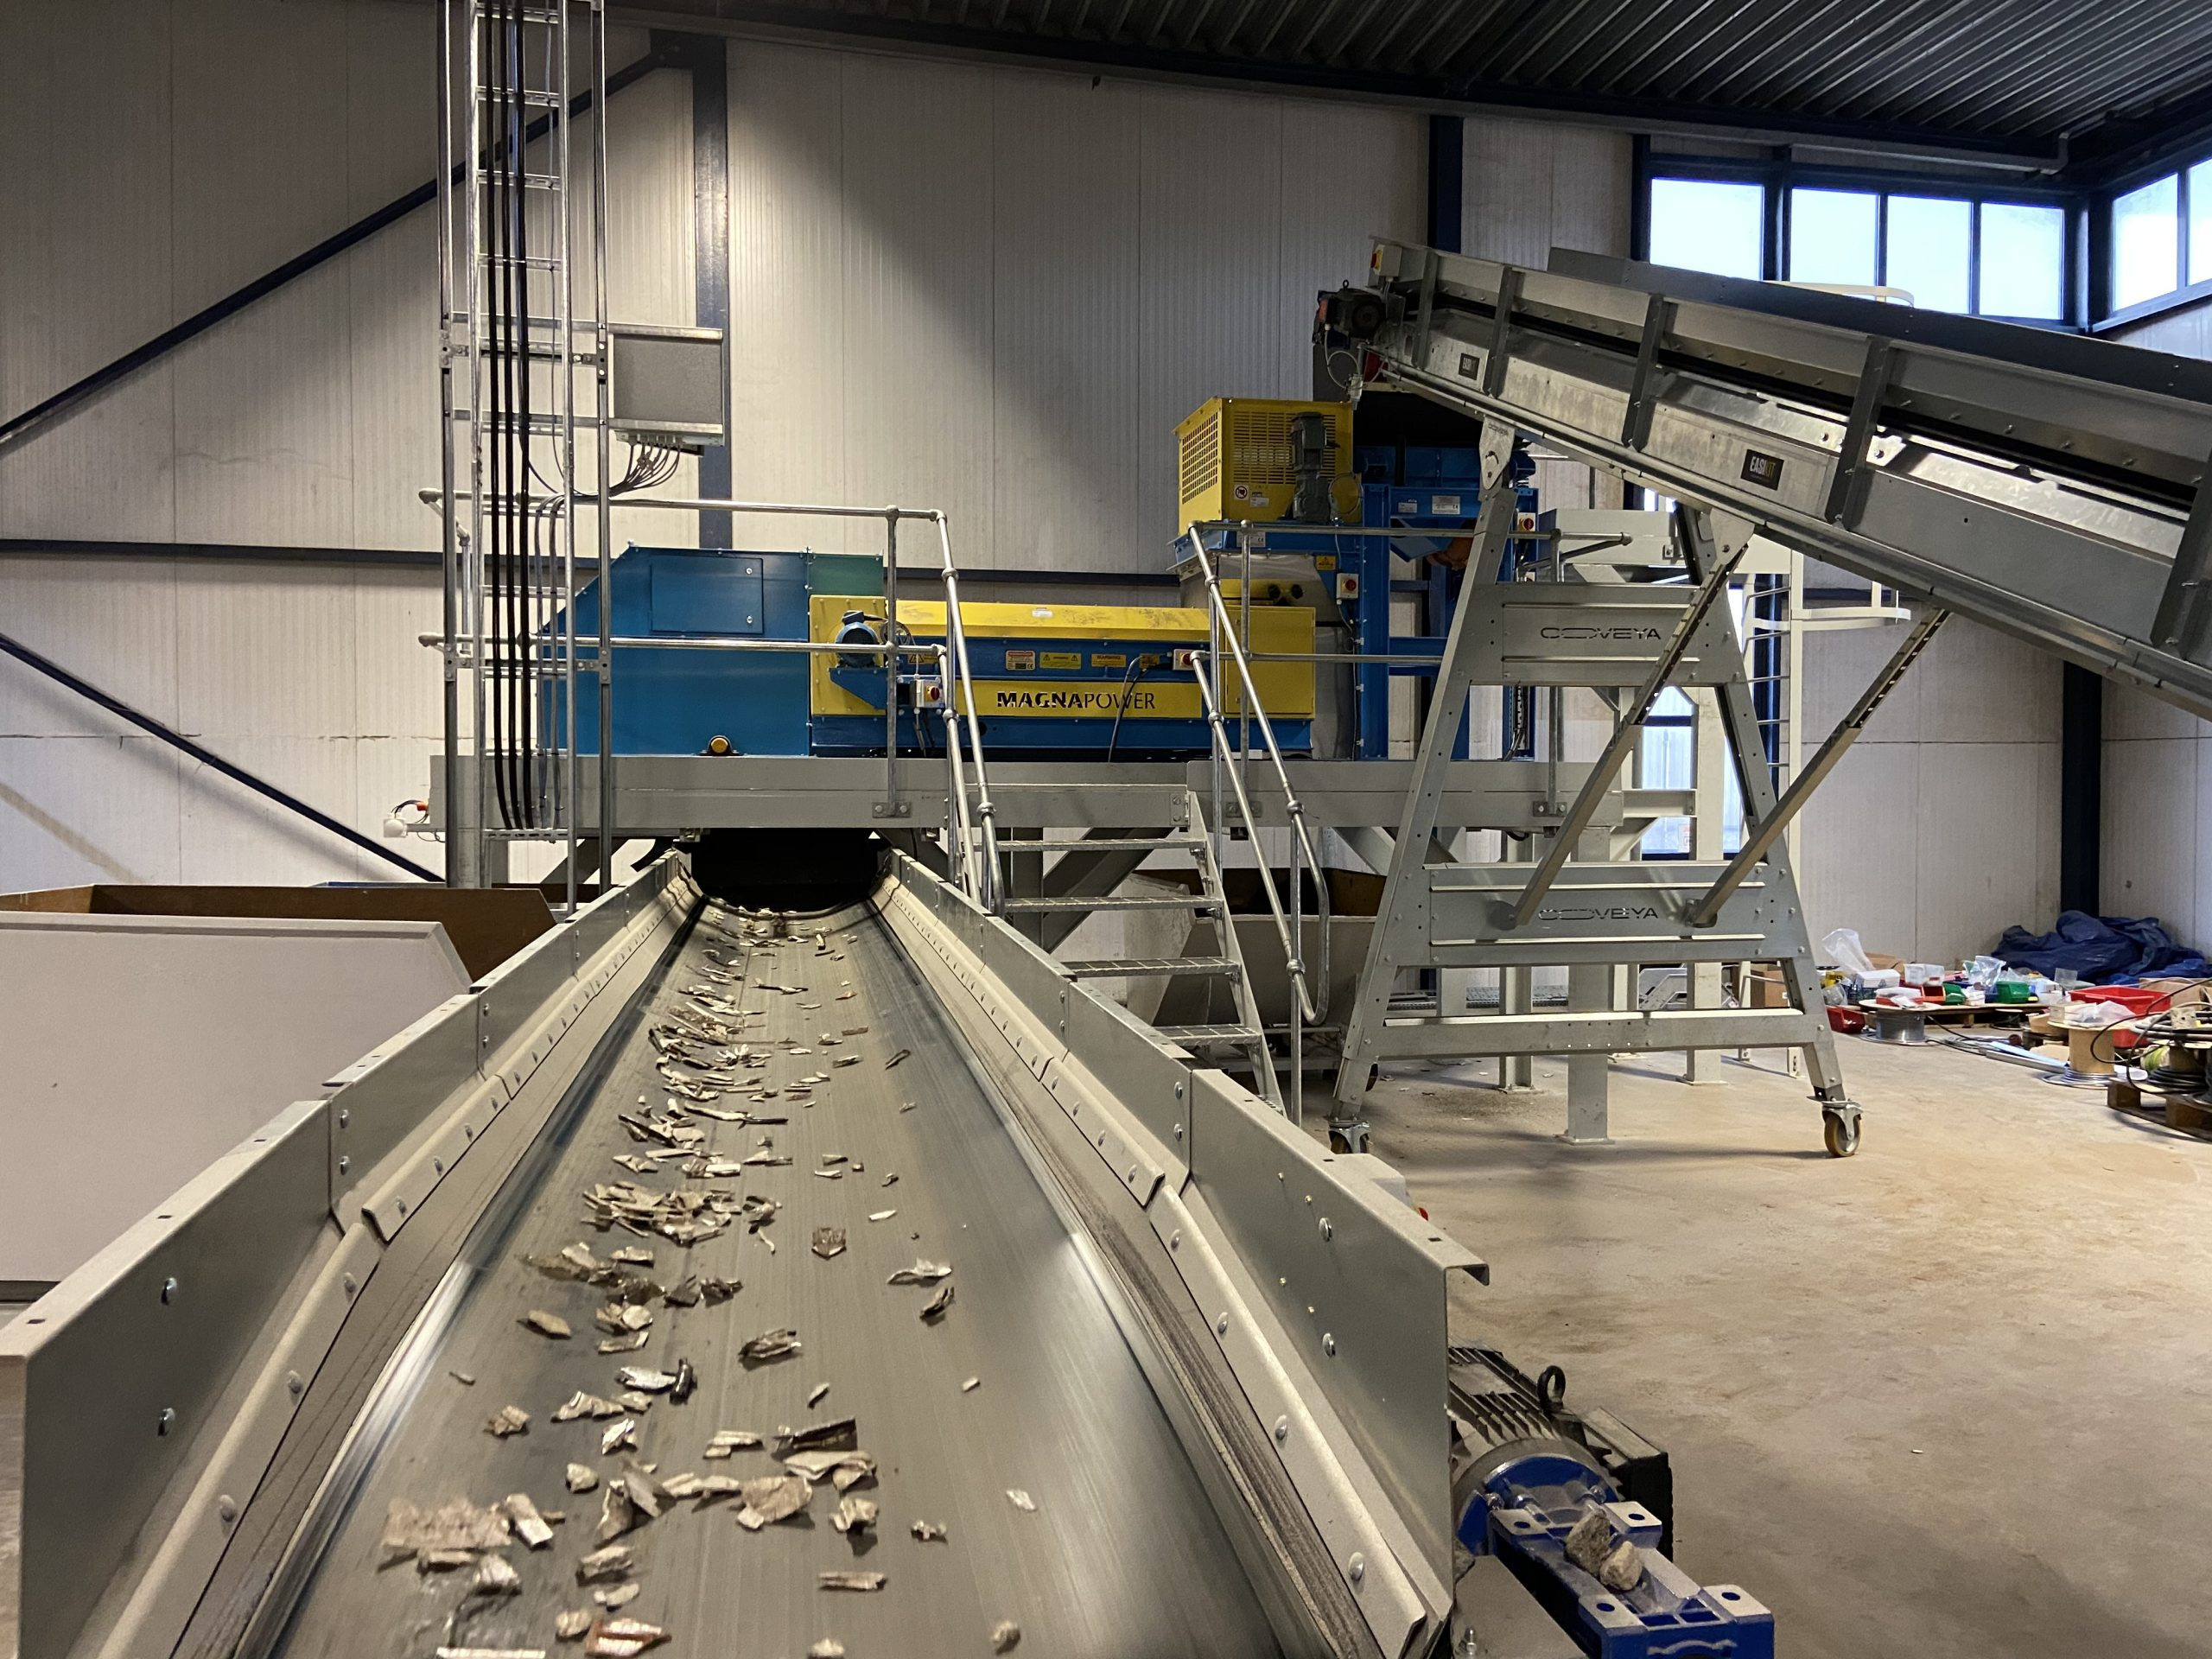 Metal free plastics after drum magnet and eddy current separate metals in window frame recycling plant